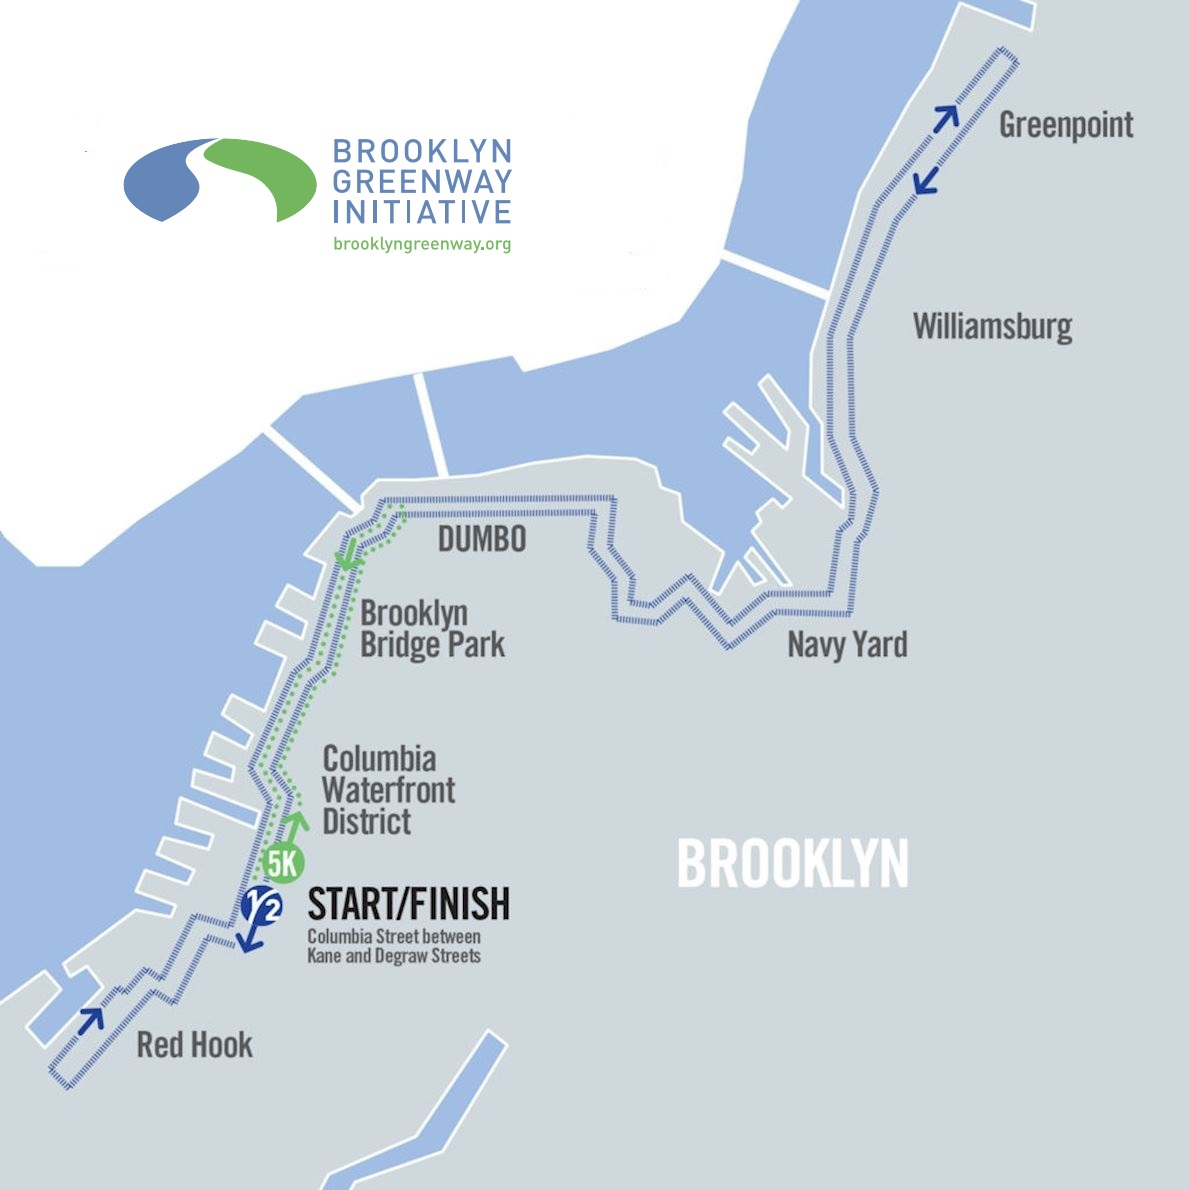 Brooklyn Greenway Half Marathon & 5K - elitefeats on map of bronx ny, map of cortlandt ny, map of carolina pr, map of park avenue ny, map of jamaica estates ny, map of manhattan ny, map of long island ny, map of new york ny, map of queens ny, map of brownsville ny, map of hamden ny, map of upstate ny, map of new lisbon ny, map of staten island ny, map of north river ny, map of clarkstown ny, map of granby ny, map of harlem ny, map of cold spring harbor ny, map of west village ny,